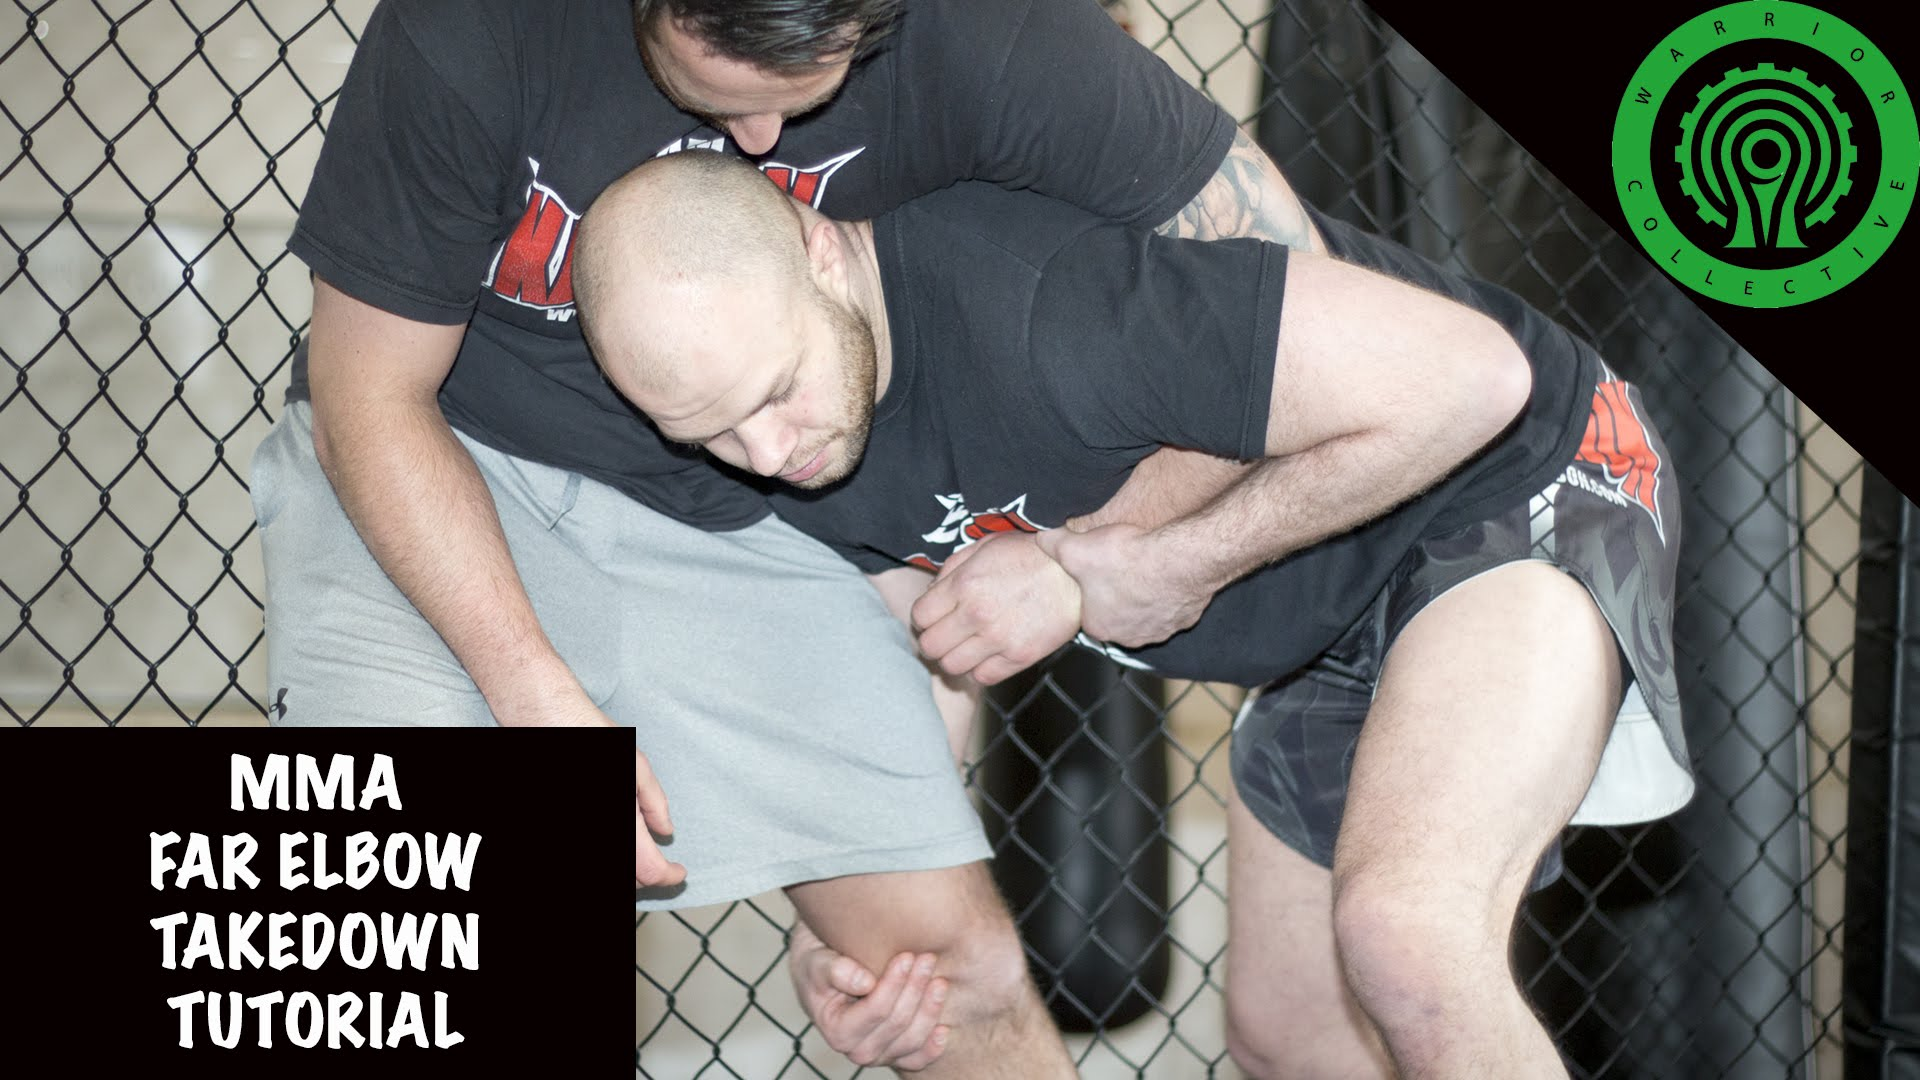 Far Elbow Takedown Tutorial